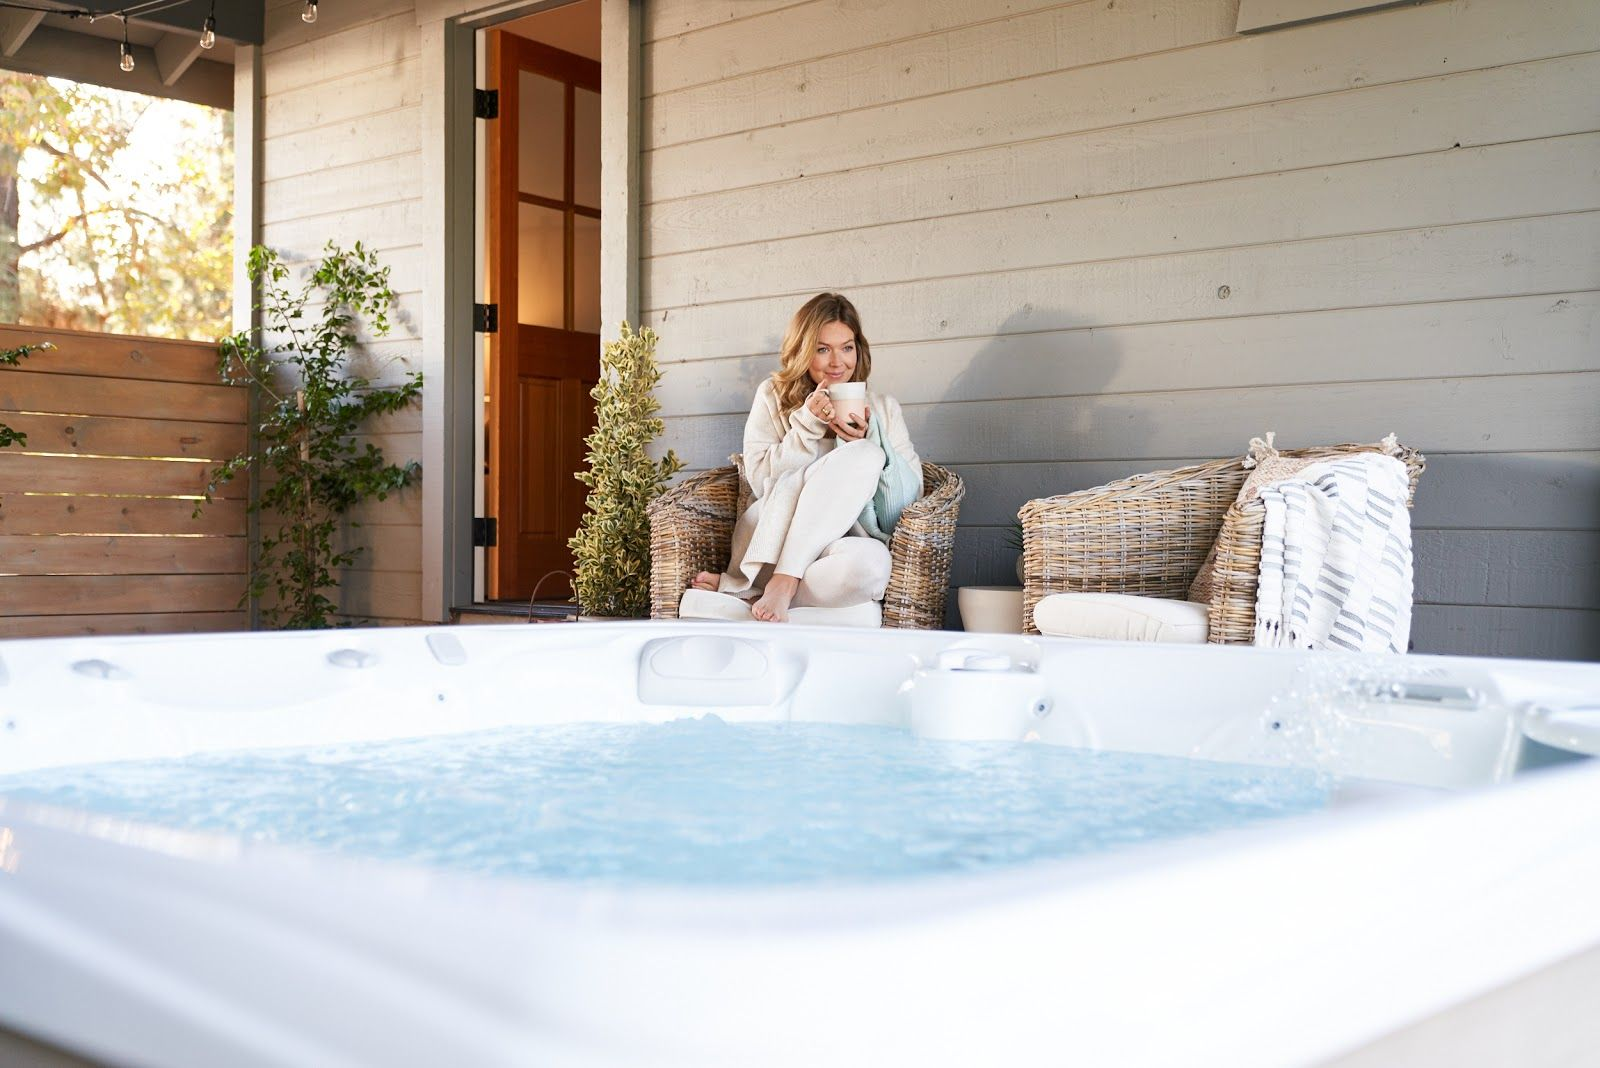 Benefits of Hot Tub Therapies in 2020 (With images) Hot